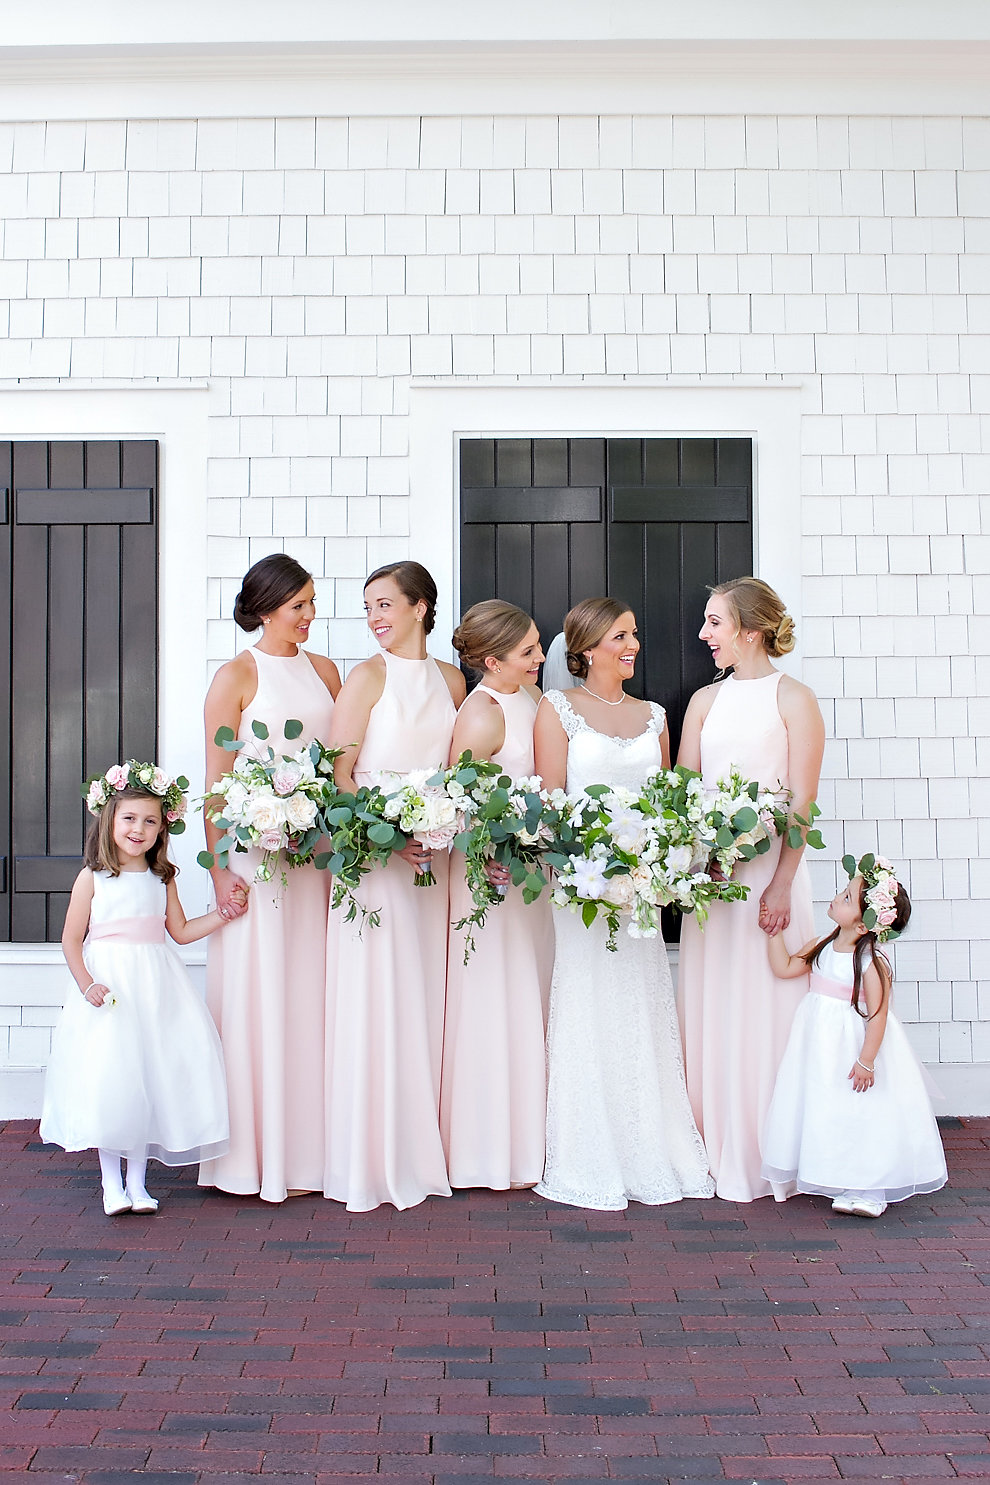 Charlotte North Carolina Wedding, Trump National Golf Course Wedding, Lakeside wedding, Blush Ivory and Greenery Wedding Design, The Graceful Host, Blush Bridesmaid Dresses, BHLDN Bridesmaid, Bridesmaid Bouquet, Greenery Bouquet, Flower Girl Attire. Blush Wedding Inspiration, Spring Wedding, Flower Crowns